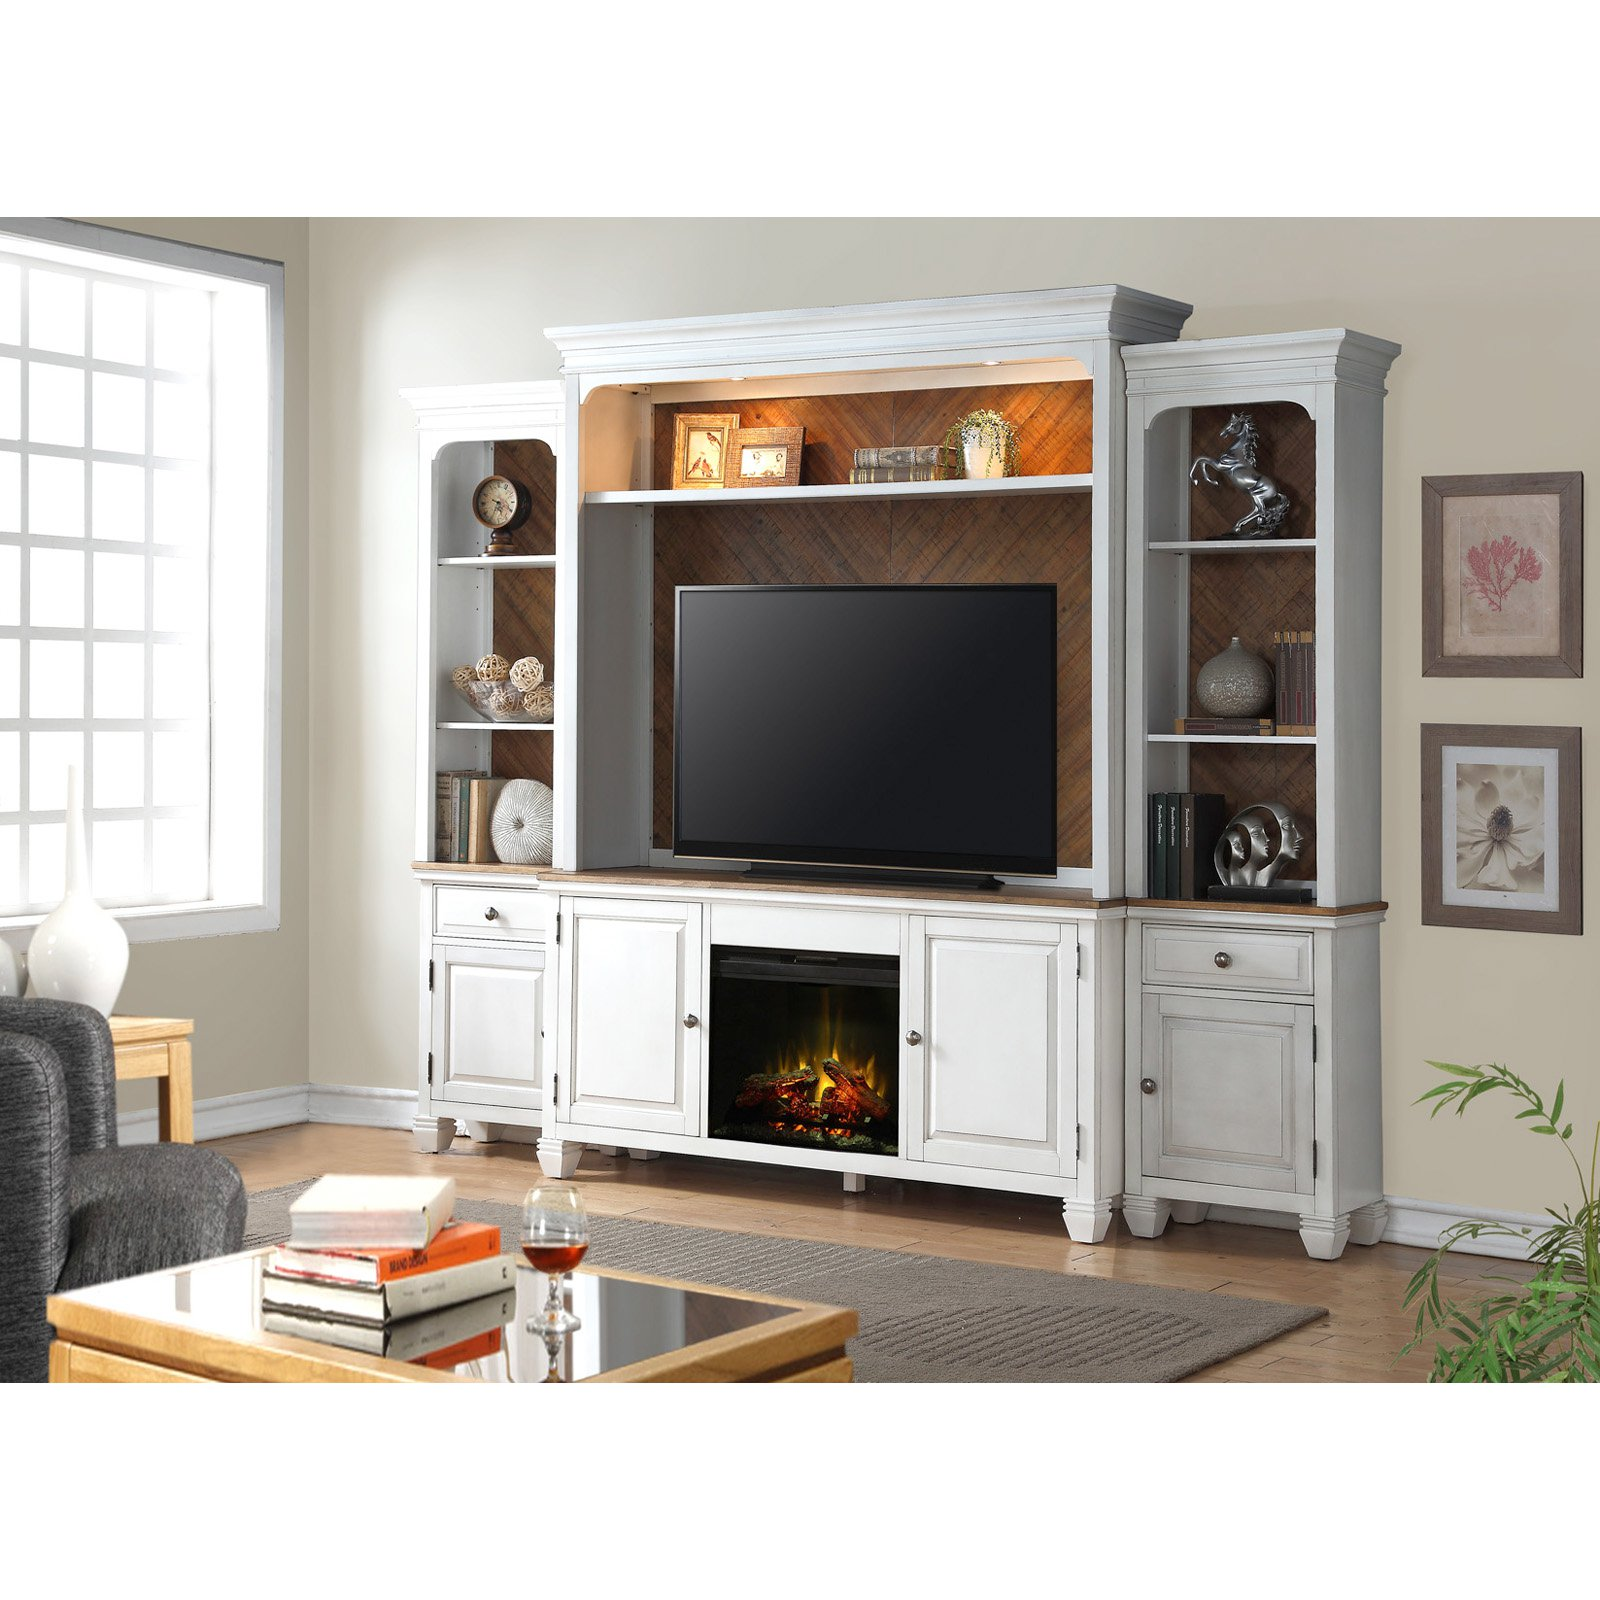 Legends Furniture Camden 68 in. Fireplace TV Console with Optional Wall Hutch and Piers